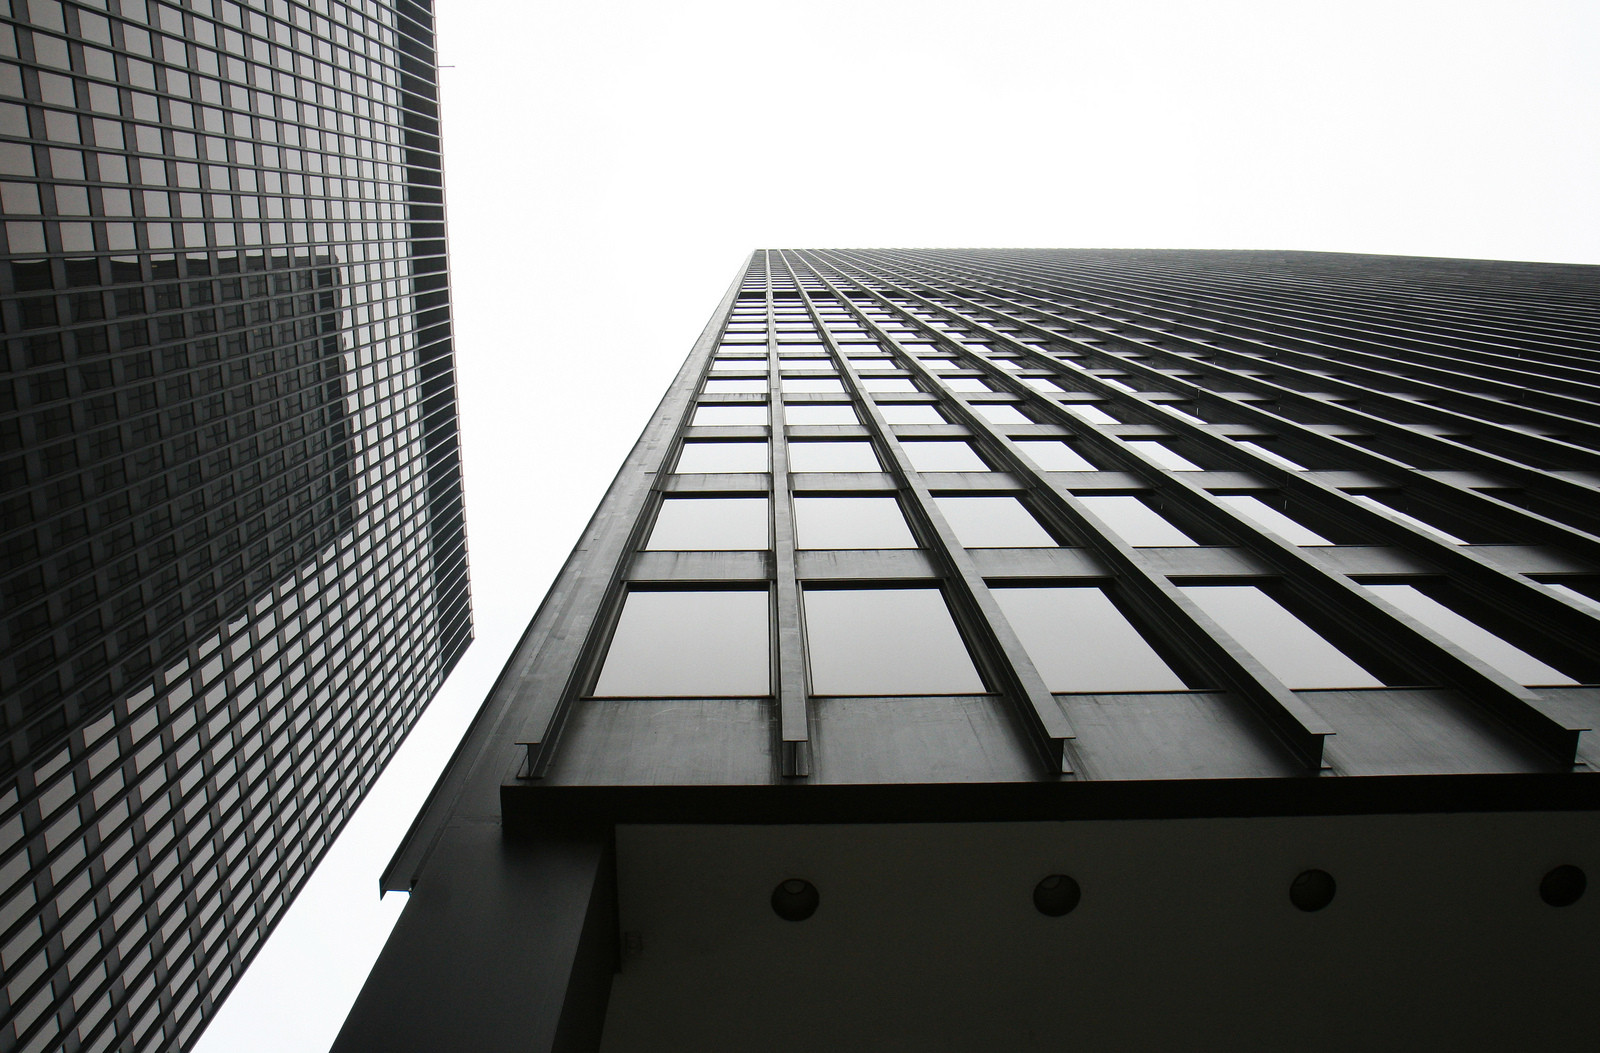 Cl sicos de arquitectura chicago federal center mies - Mies van der rohe muebles ...